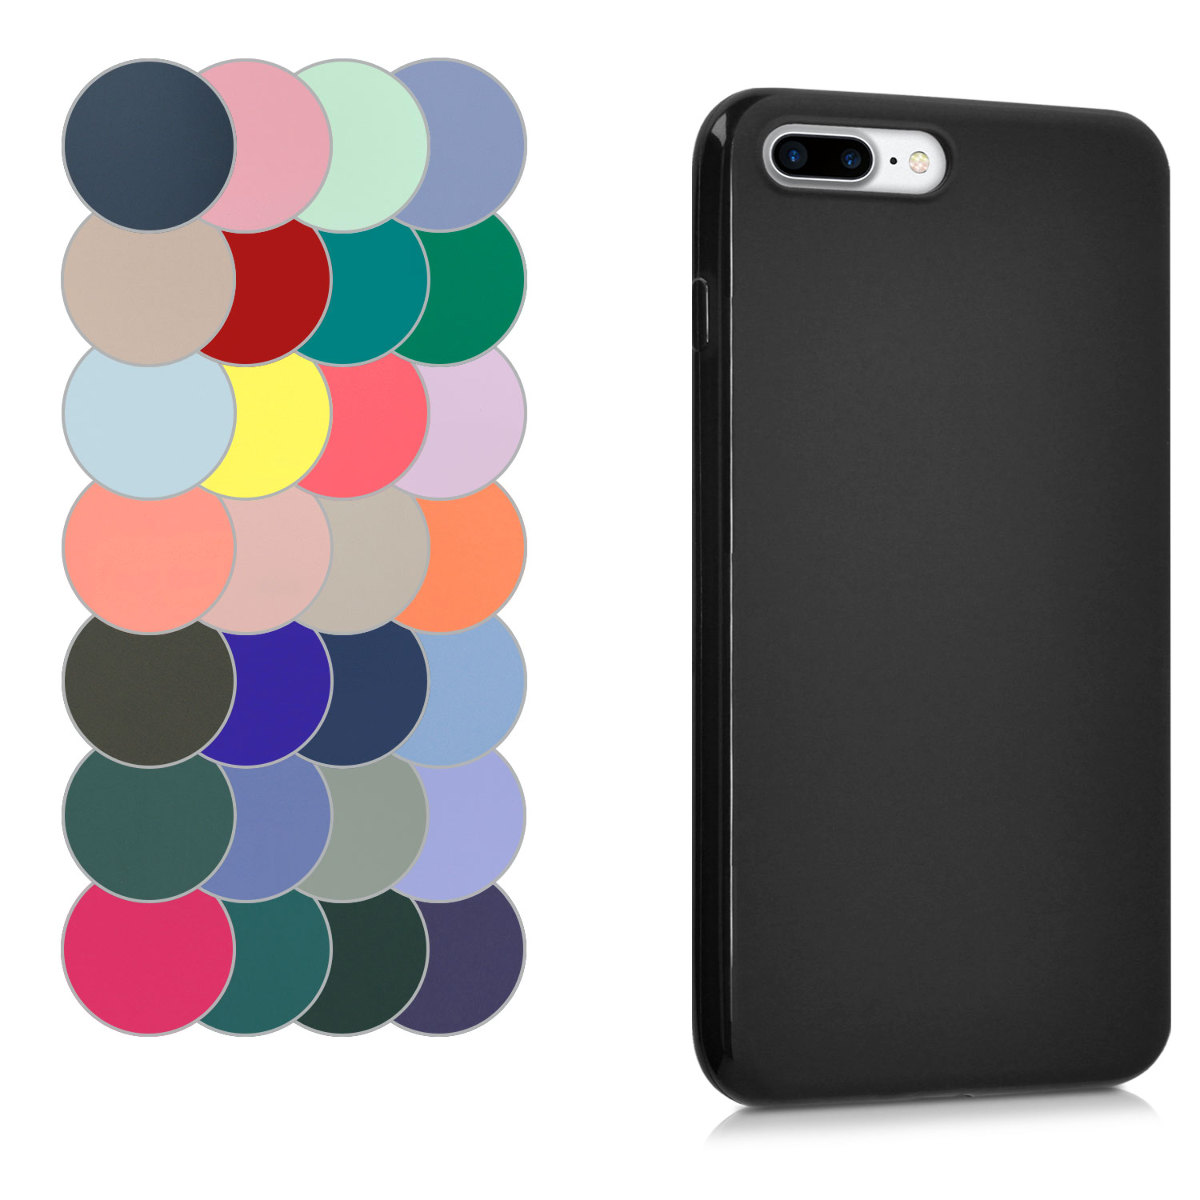 bcf6c31c633 kwmobile TPU Silicone Case for Apple iPhone 7 Plus   8 Plus - Soft Flexible  Shock Absorbent Protective Phone Cover - Desired Color. ‹ › ‹ › ‹ › ‹ ›